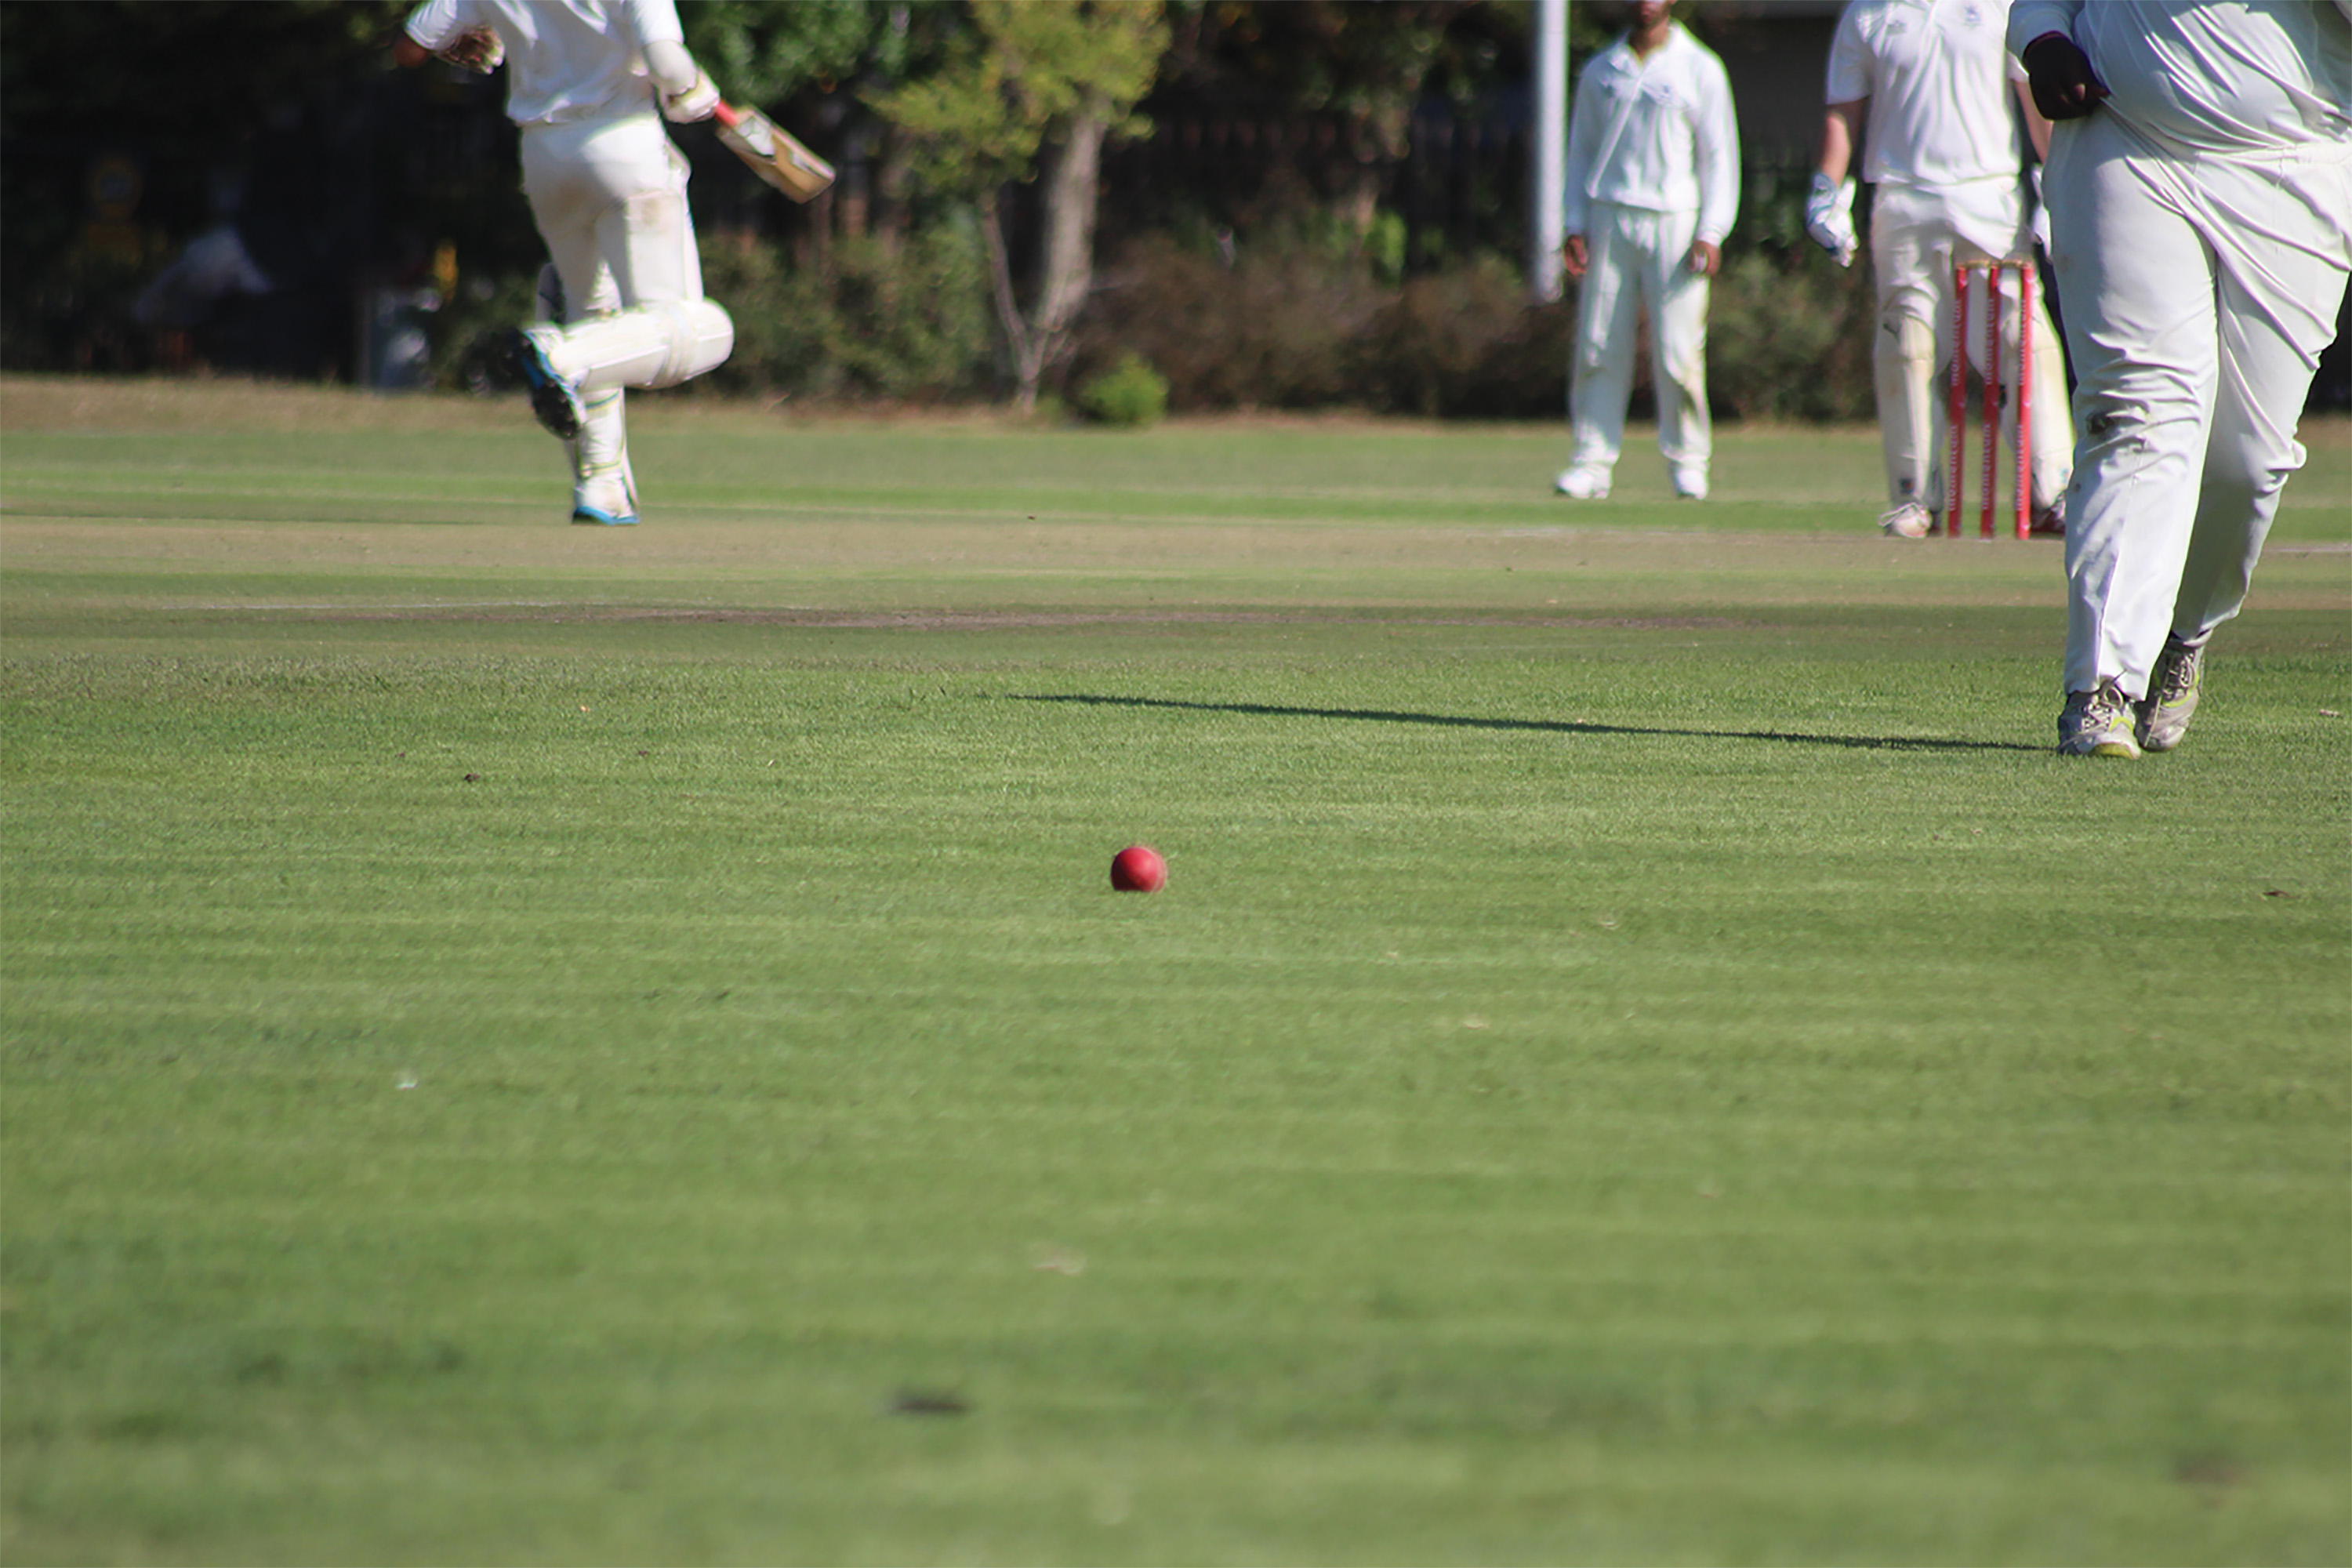 Witsies play in the USSA Cricket tournament